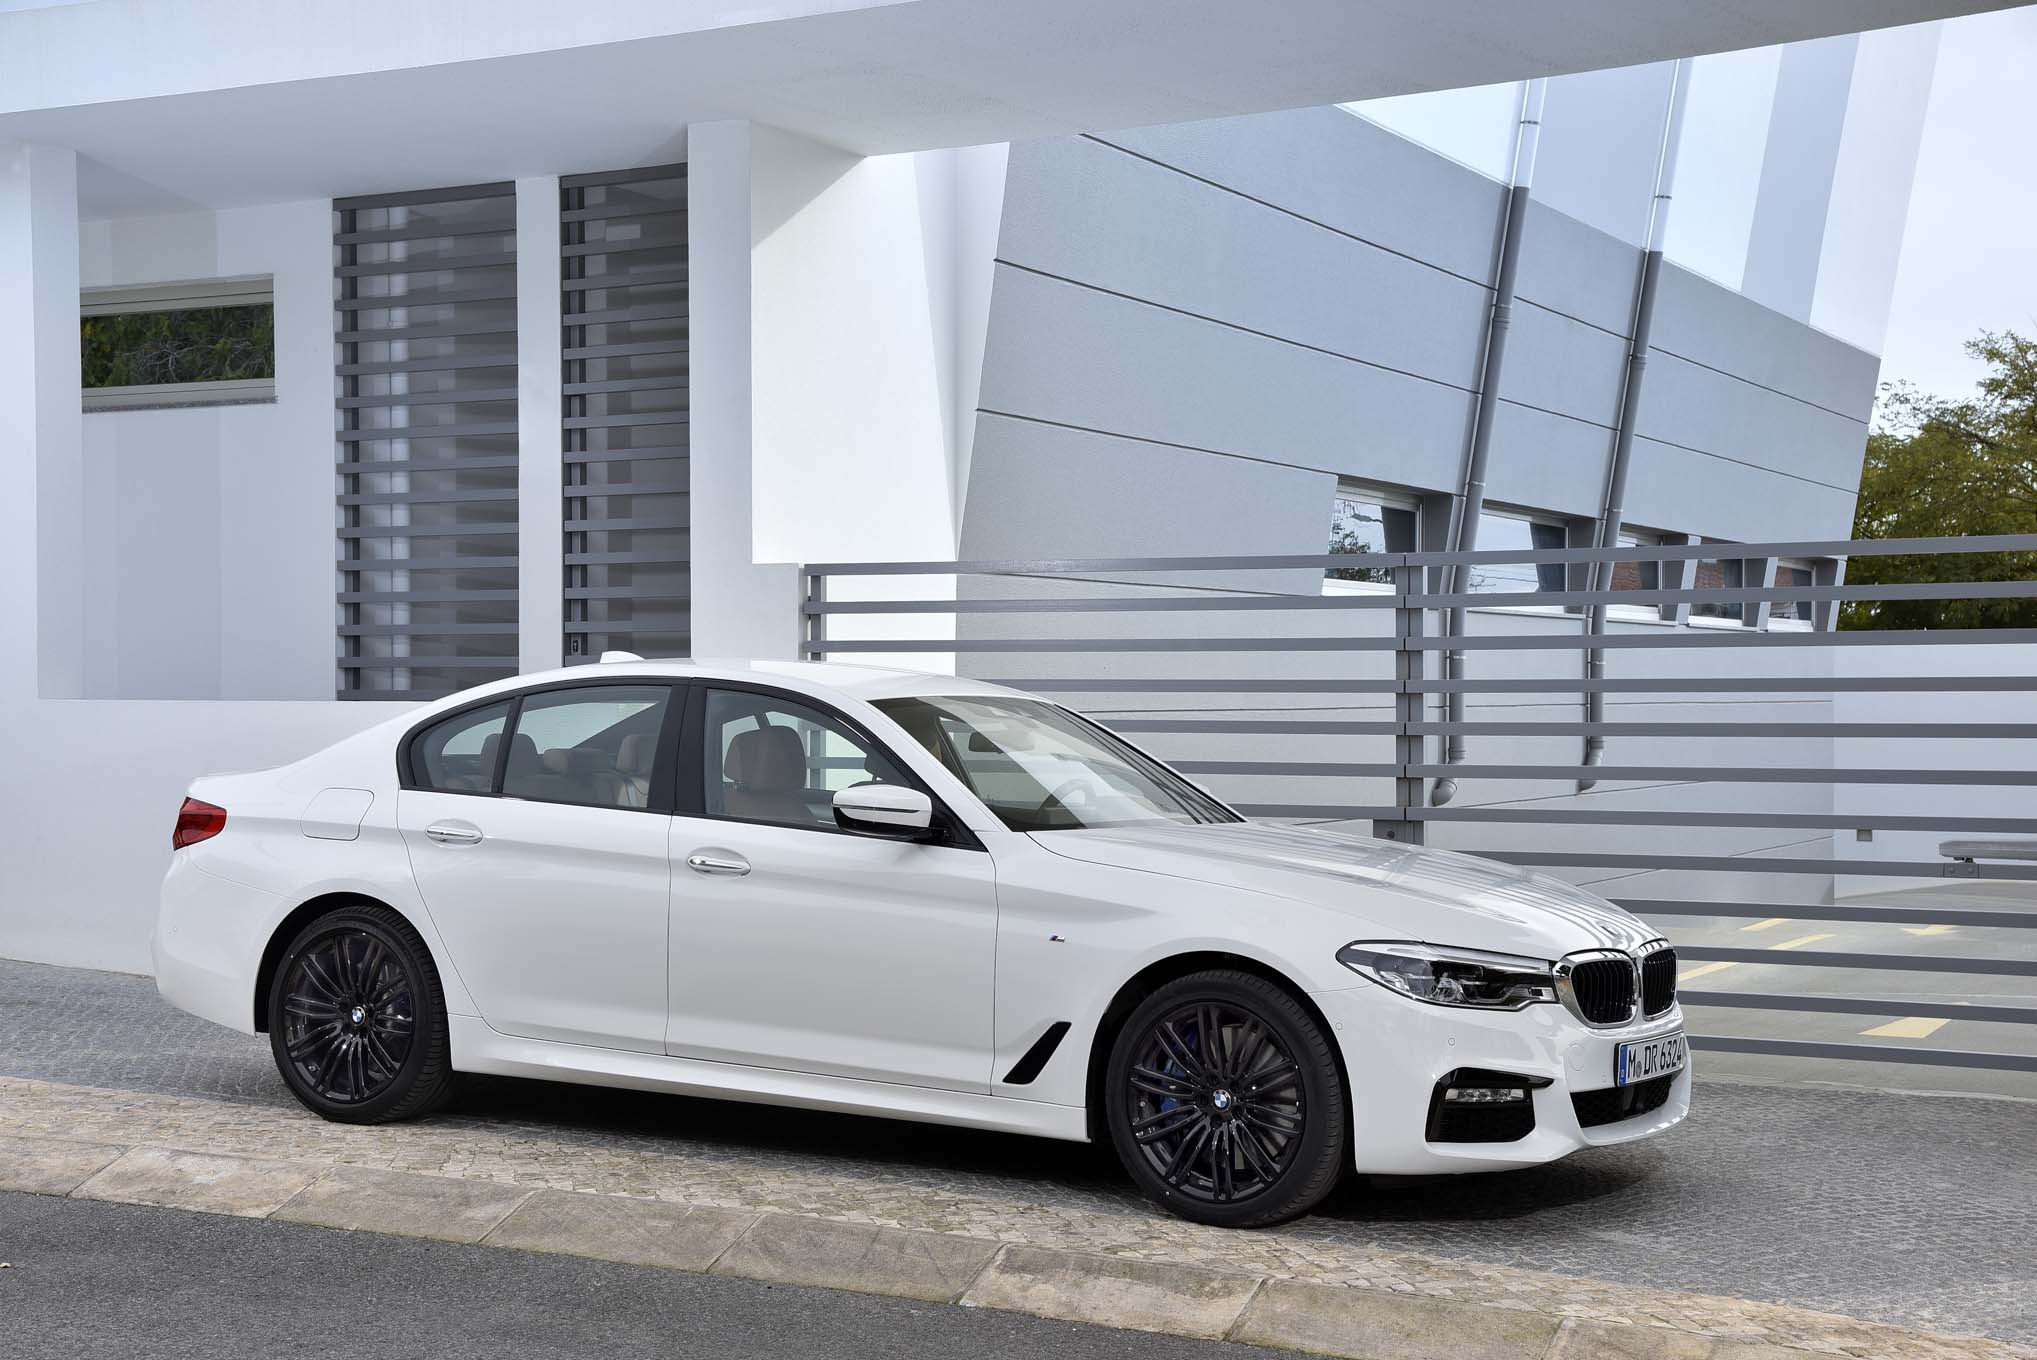 2017 BMW 540i M Sport Exterior Side And Front (Photo 10 of 35)